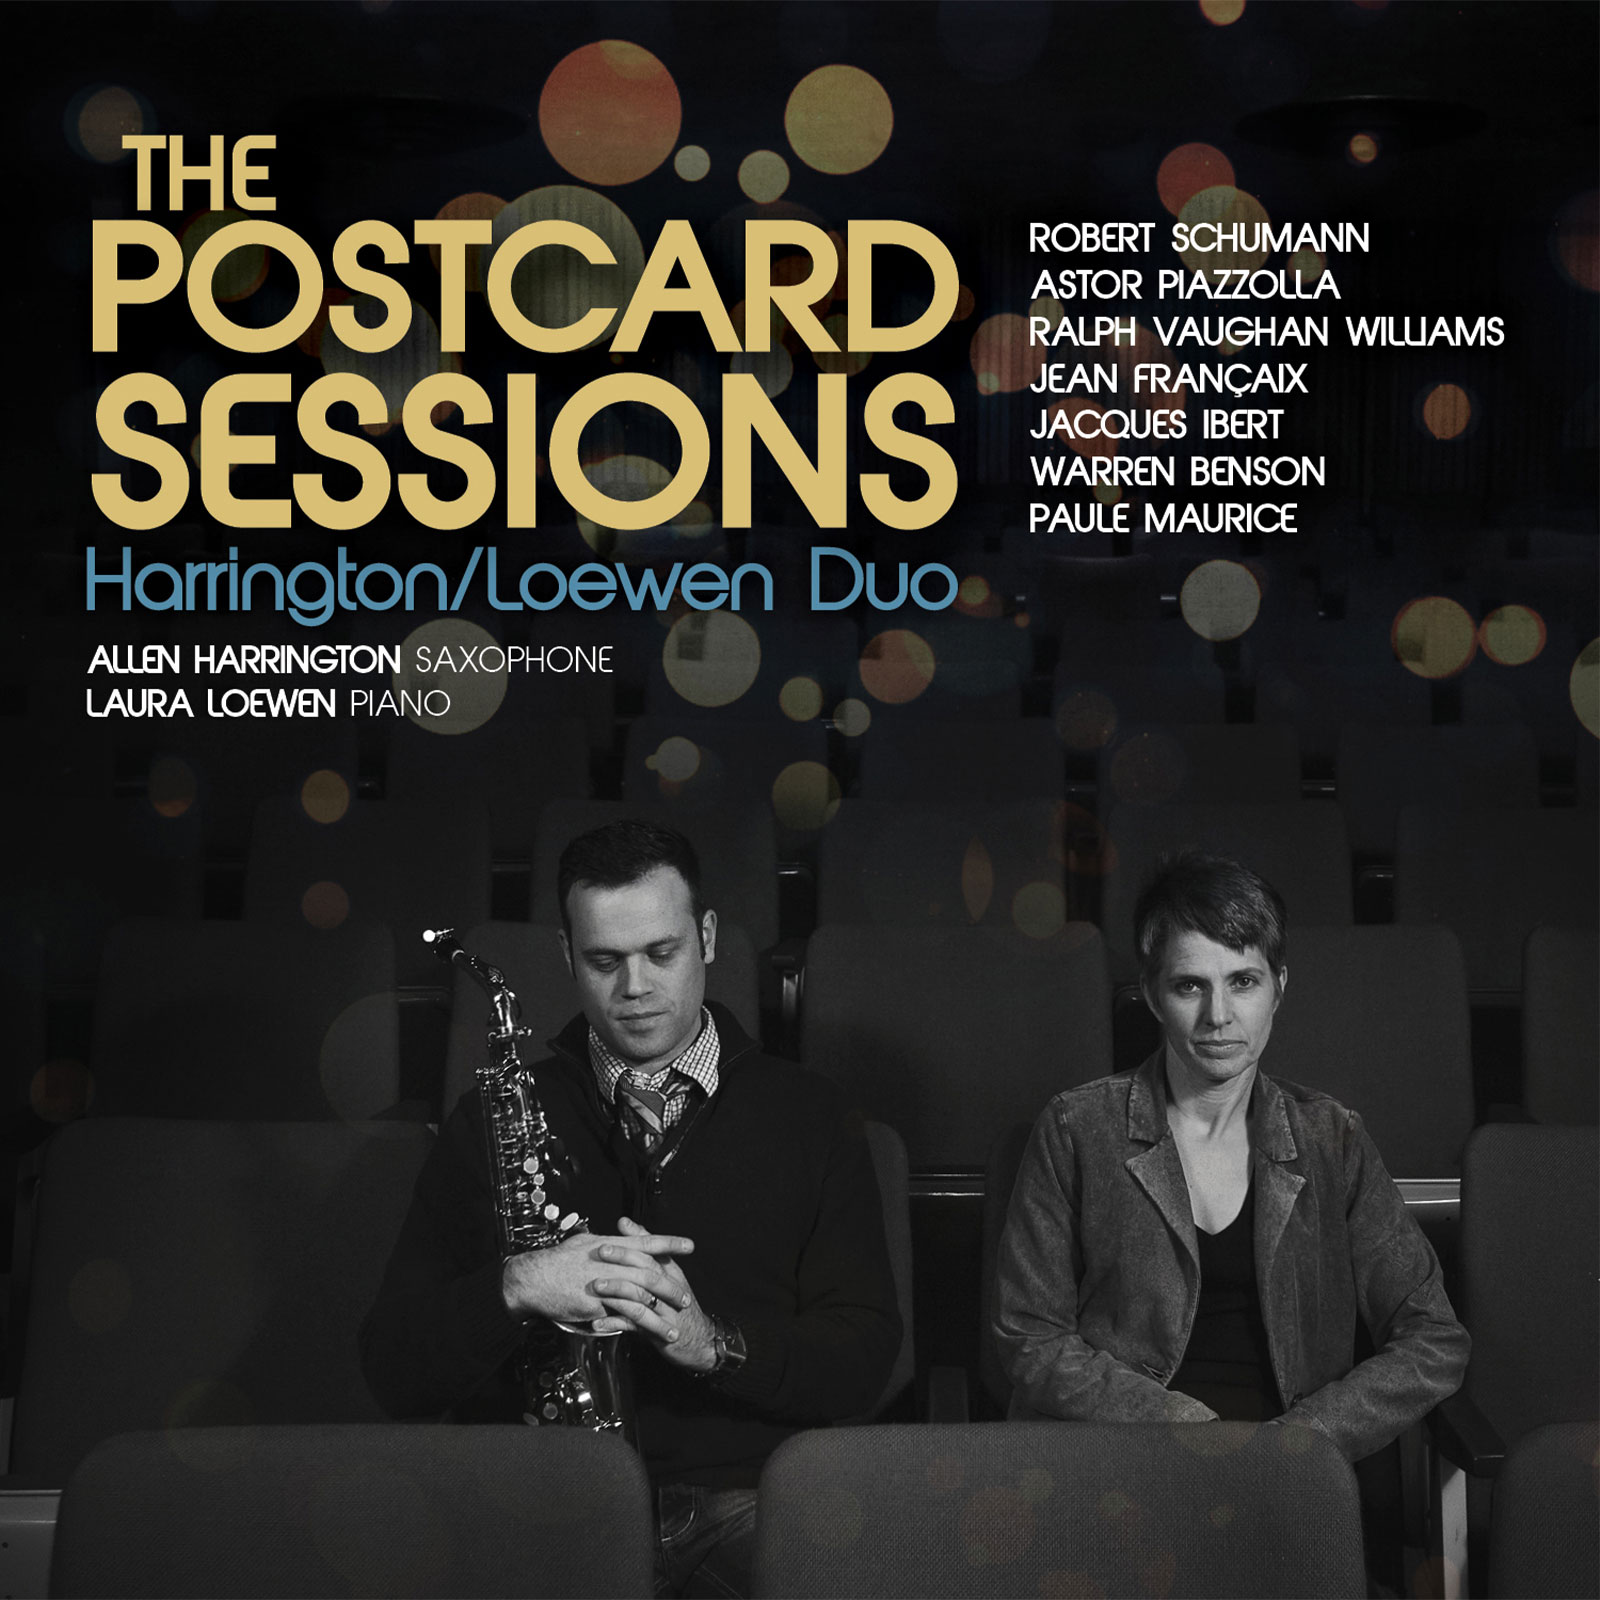 THE POSTCARD SESSIONS - Album Cover